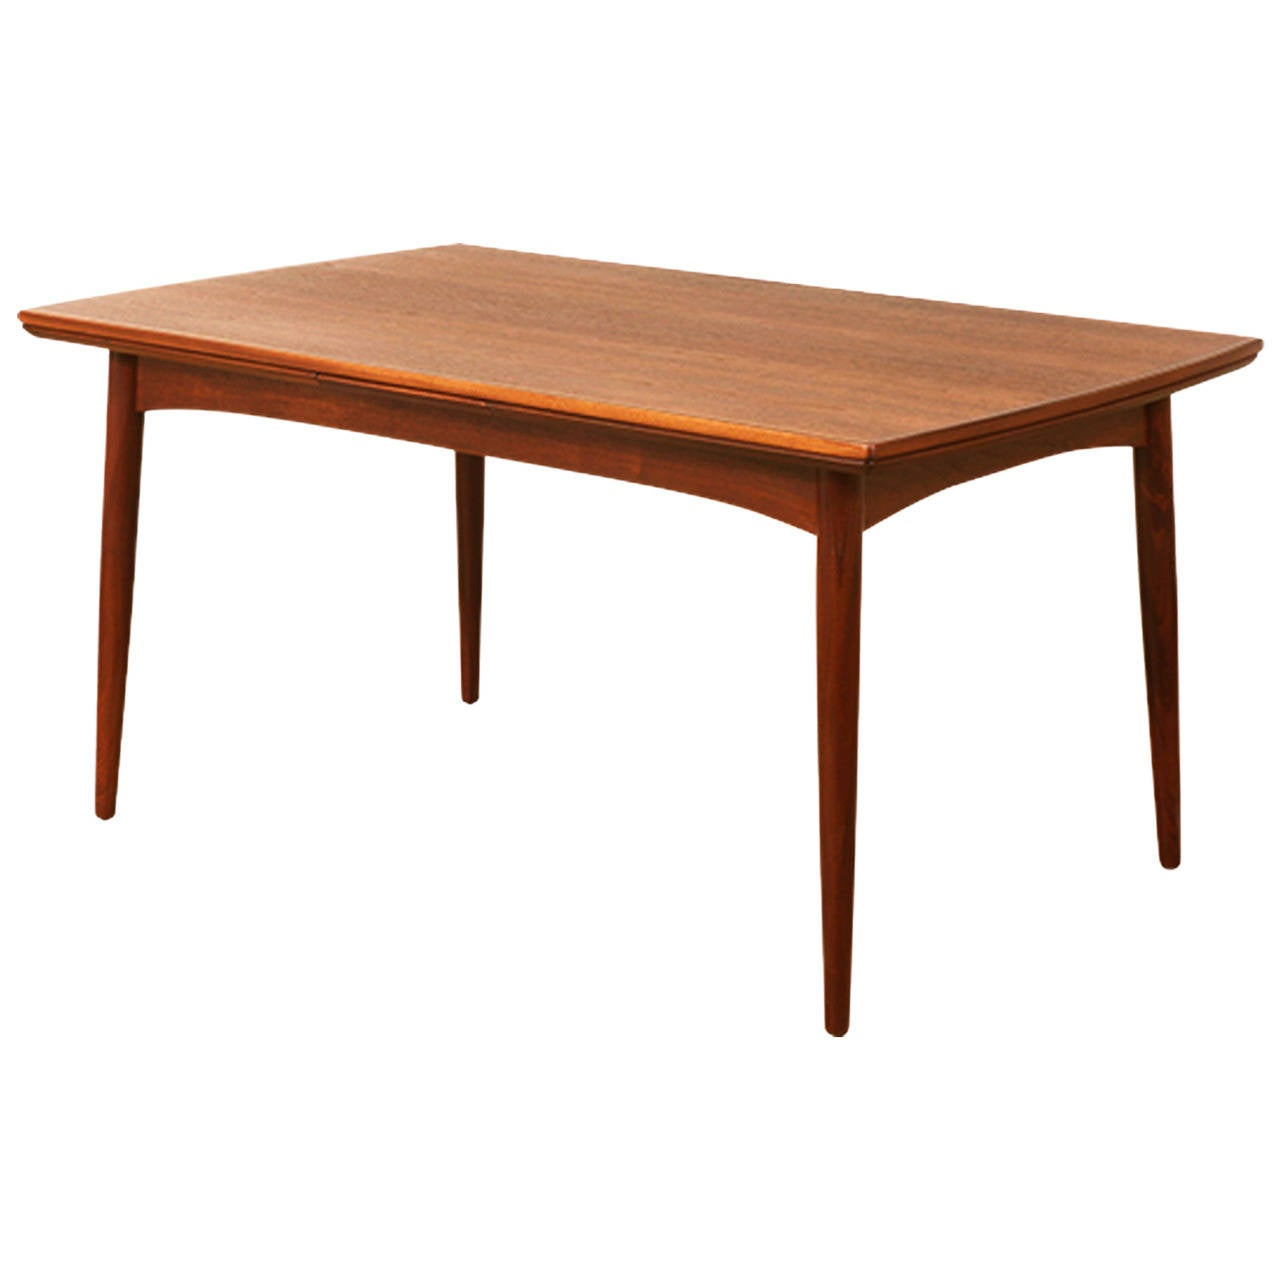 Danish Modern Walnut Draw Leaf Dining Table At 1stdibs